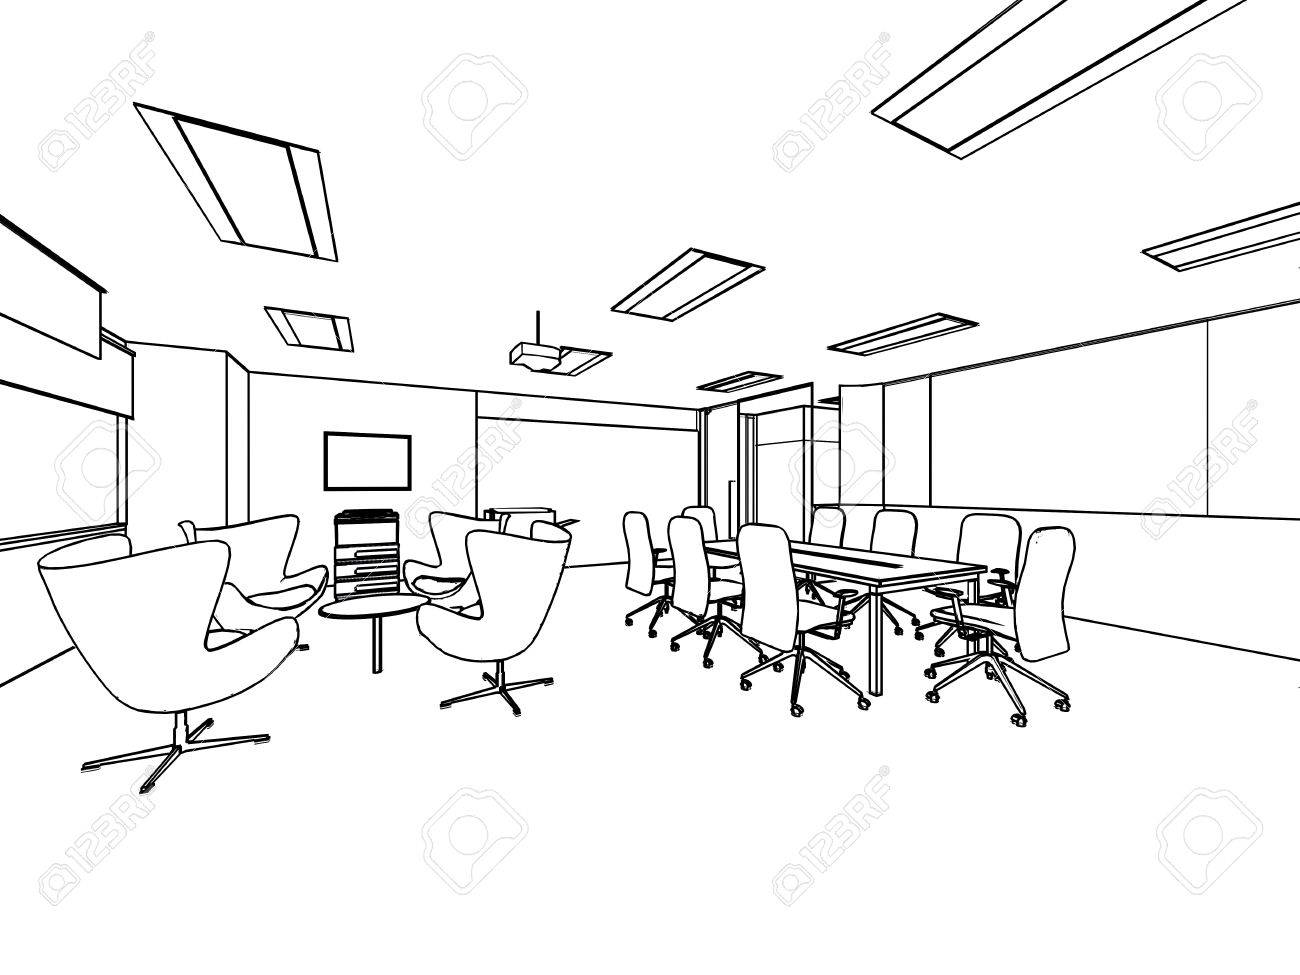 Outline Sketch Drawing Perspective Of A Interior Space Office ...